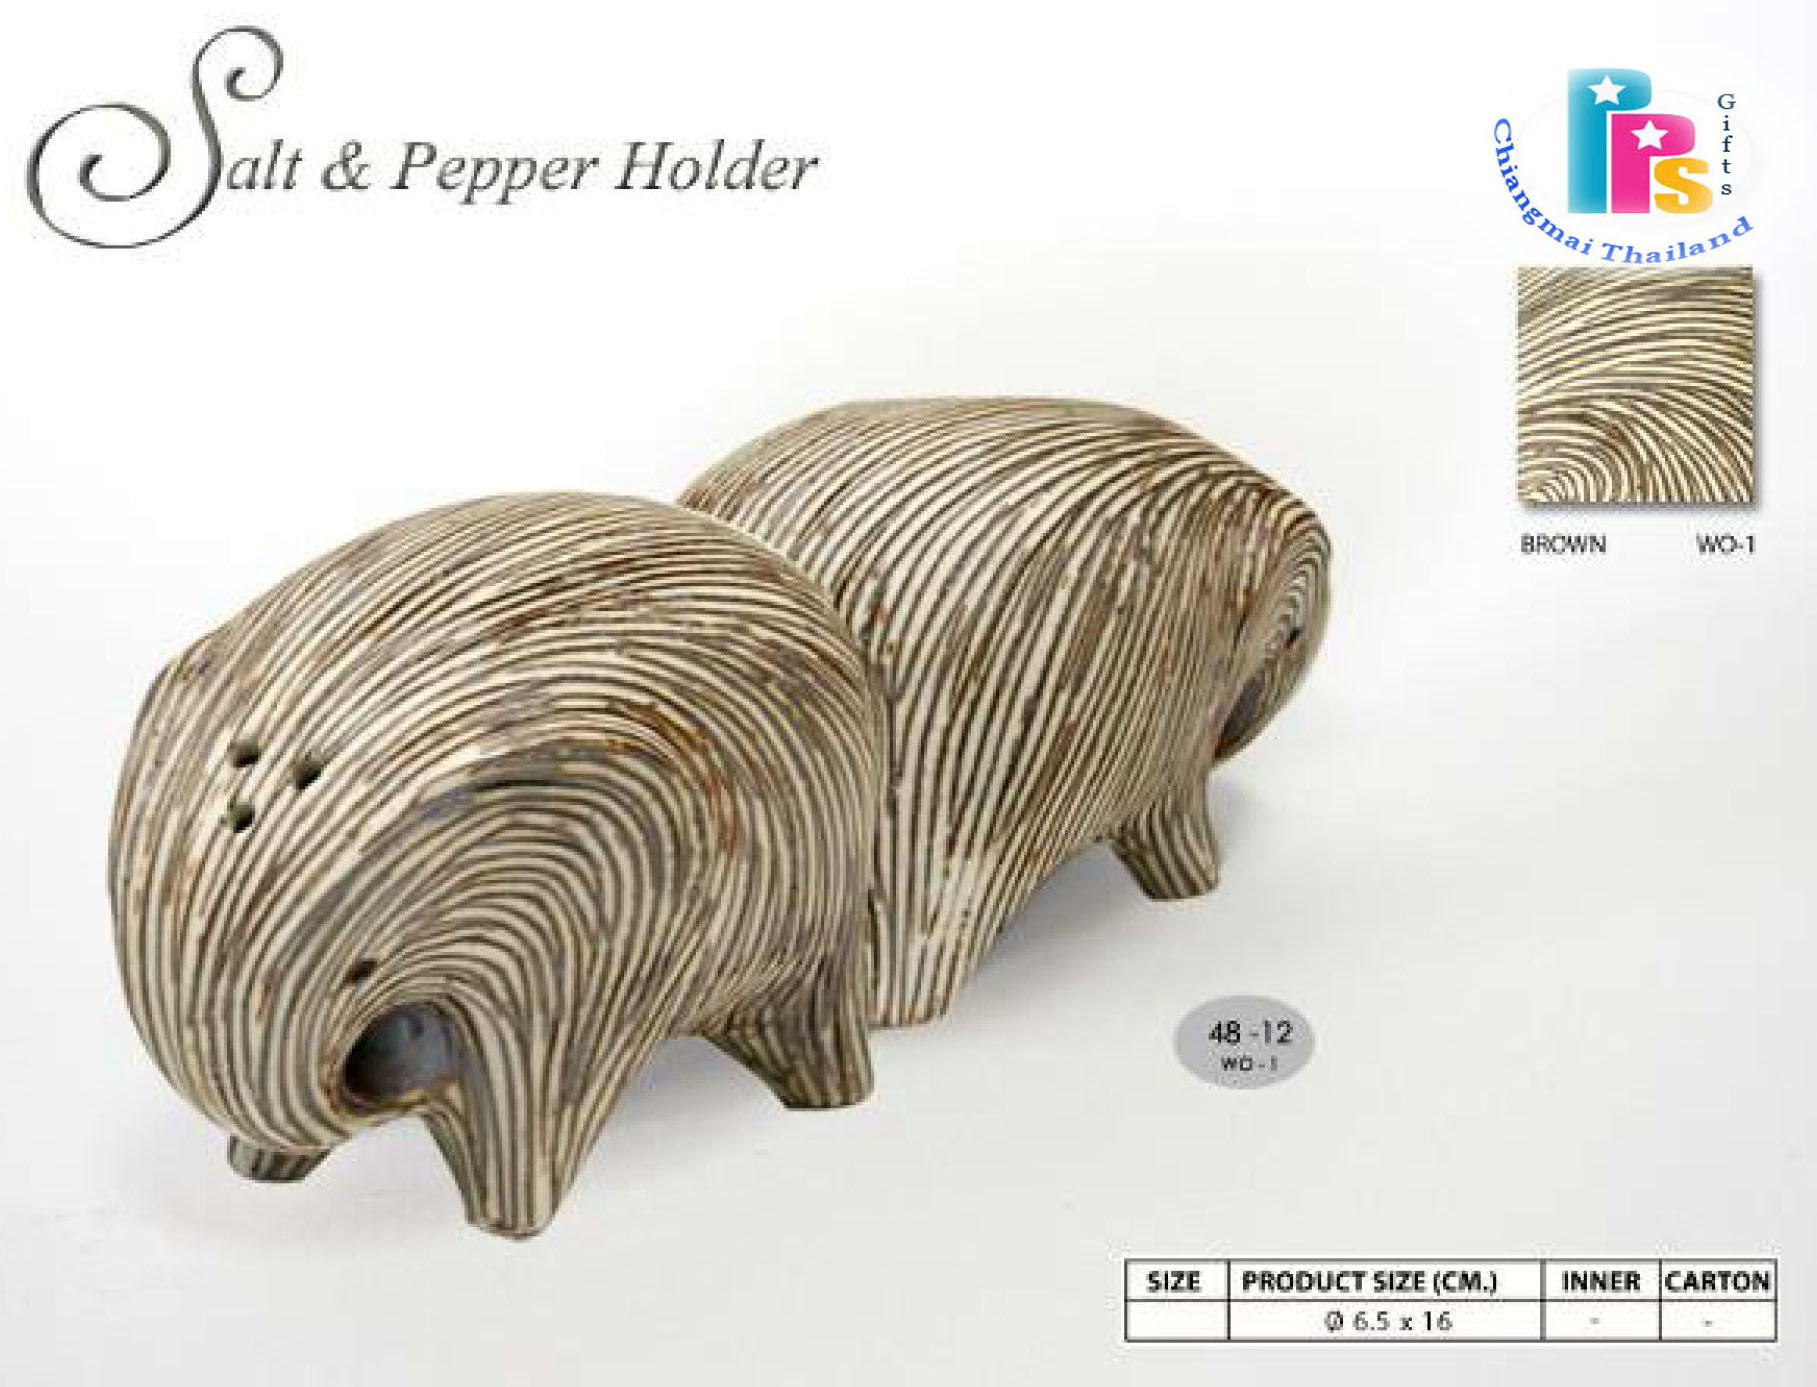 Elephant Pepper-Salt Shaker-6